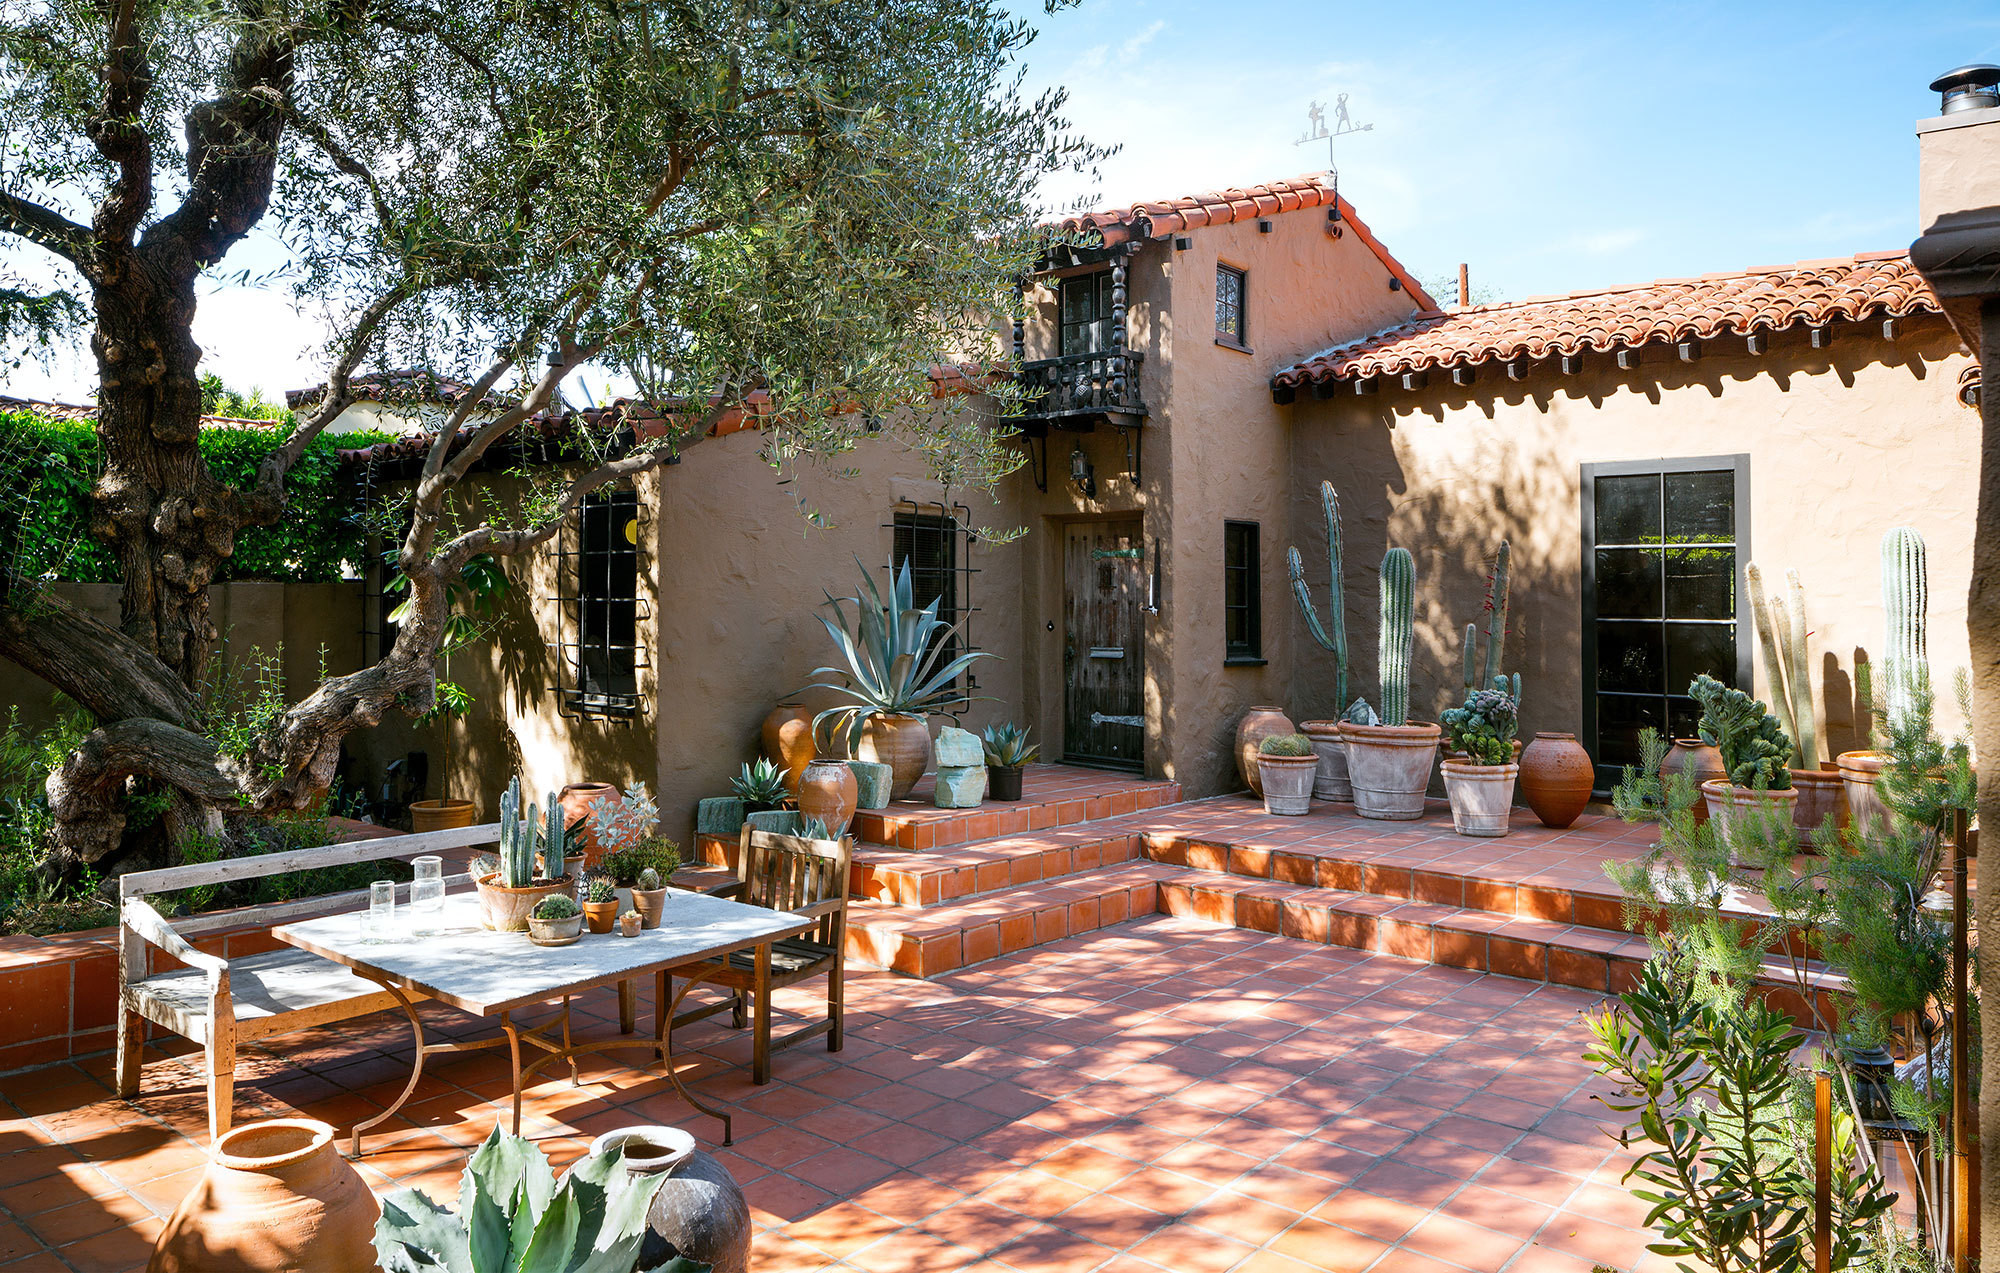 Container gardens of cacti (designed by Duncan) look right at home in the red-tiled outdoor living room.